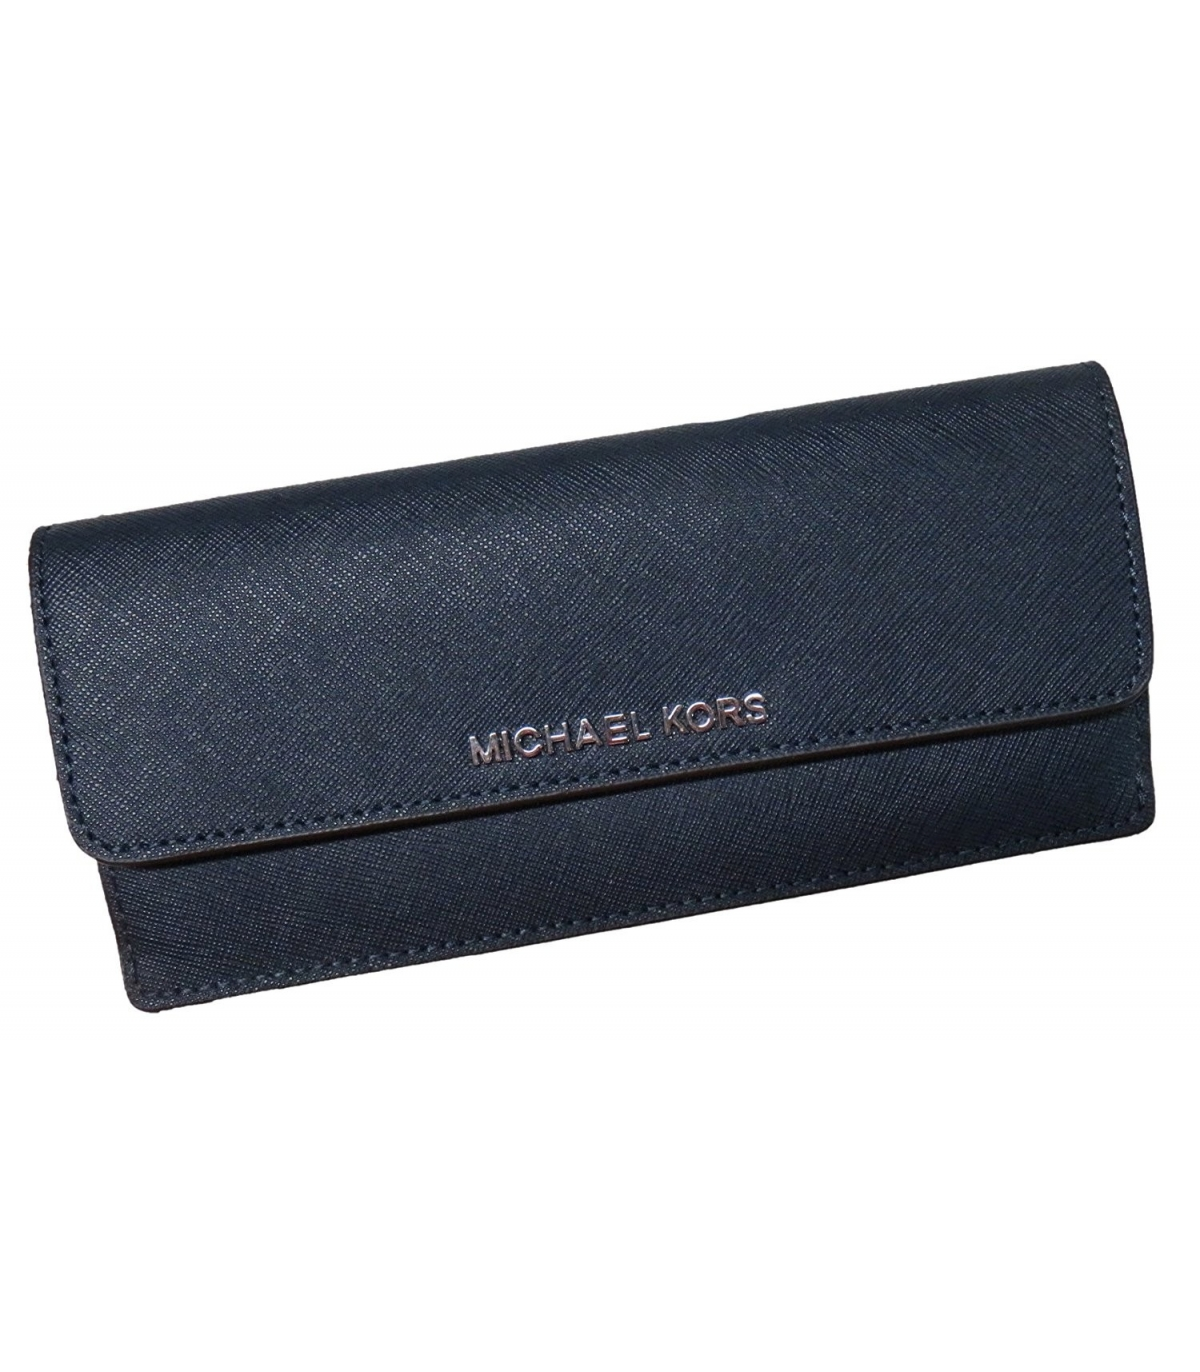 3393003f8ba4 Michael Kors Jet Set Travel Flat Saffiano Leather Wallet Navy/Steel Blue